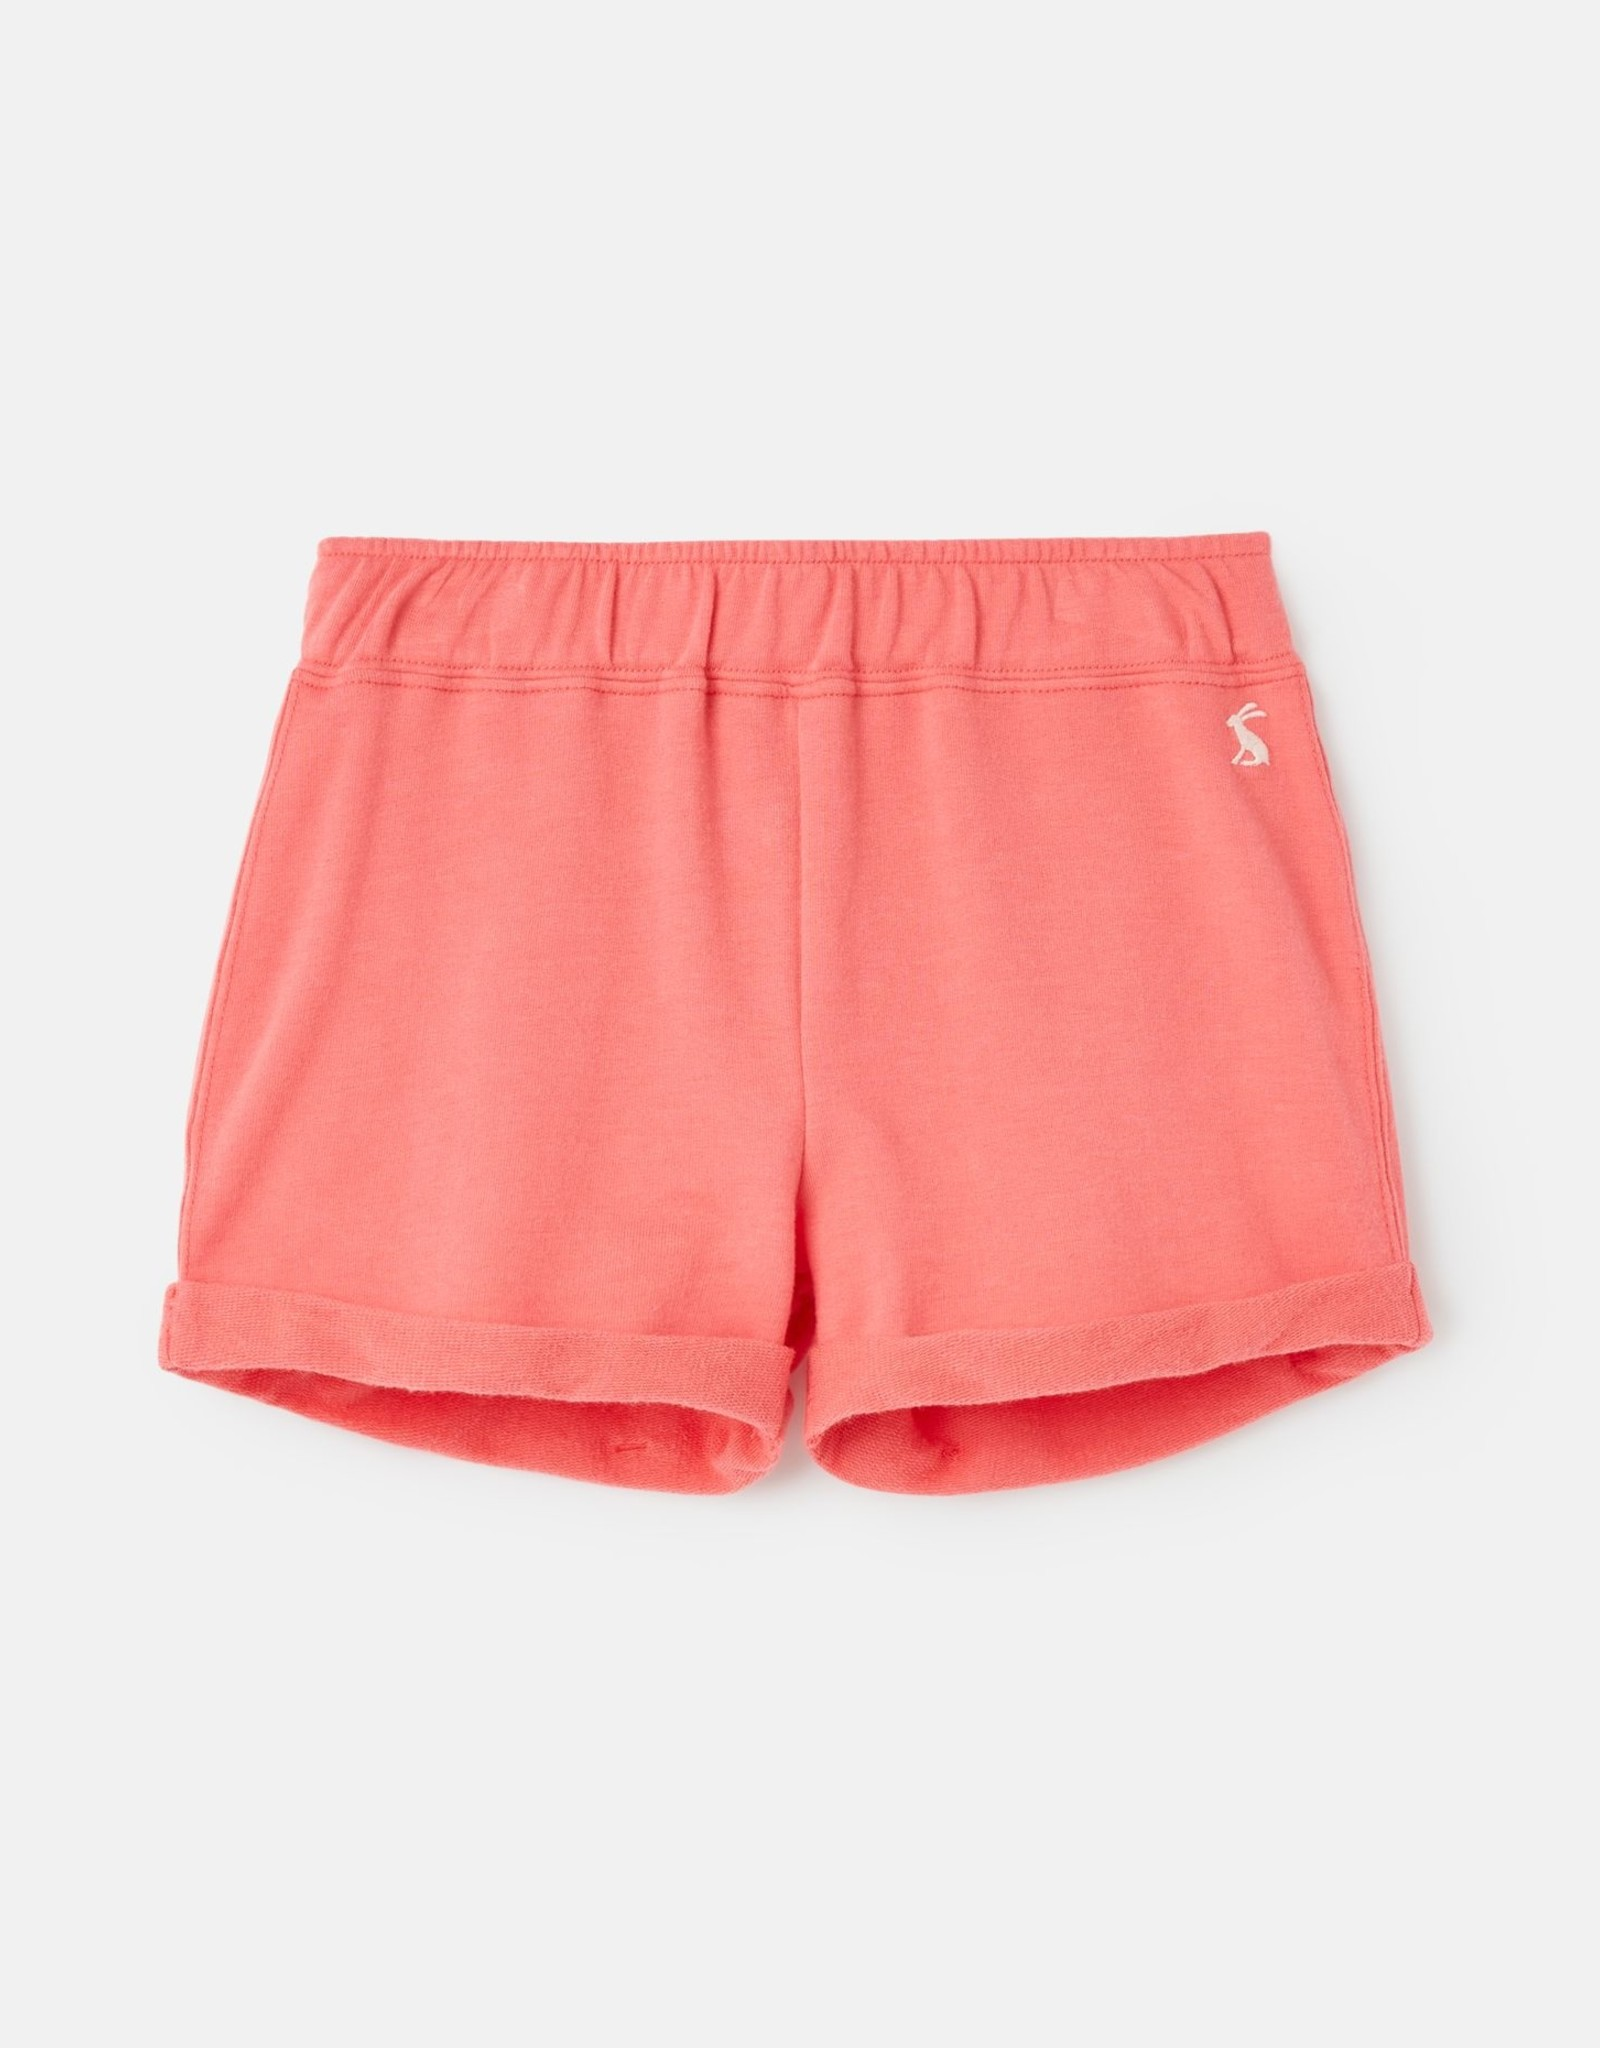 Joules SP21 G Coral Shorts